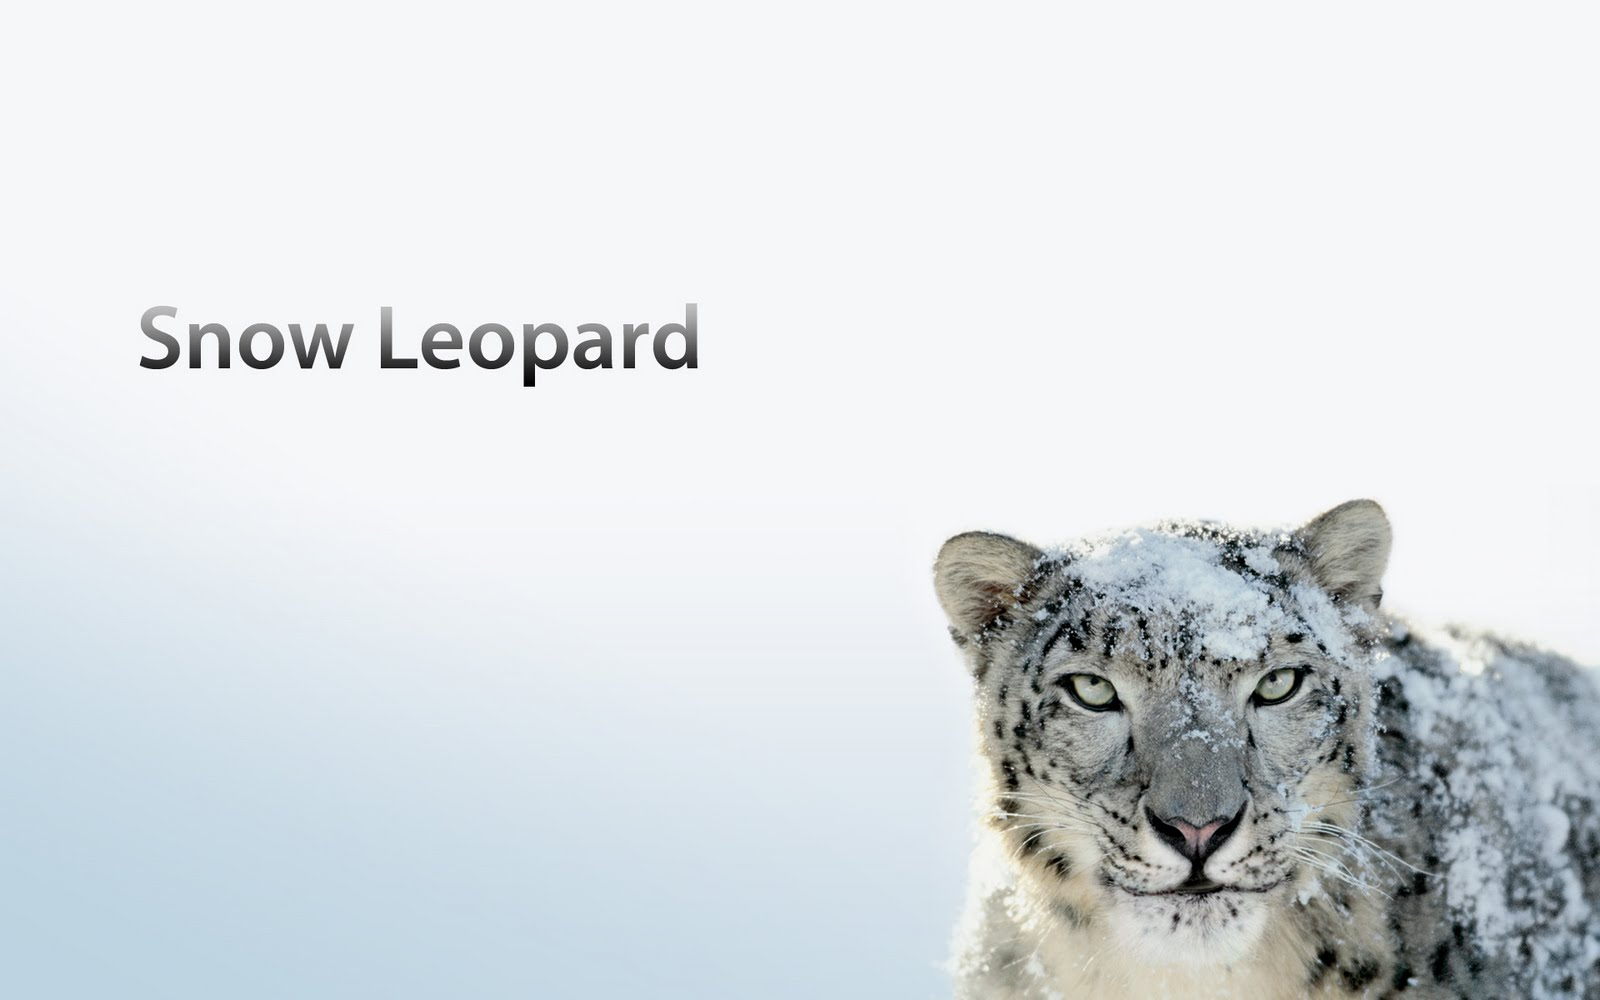 I have a late 2009 Macbook Pro that had OS X Snow Leopard 10.6.8. I downloaded OS X Mavericks to upgrade and began the installation. After my Mac restarted and ...